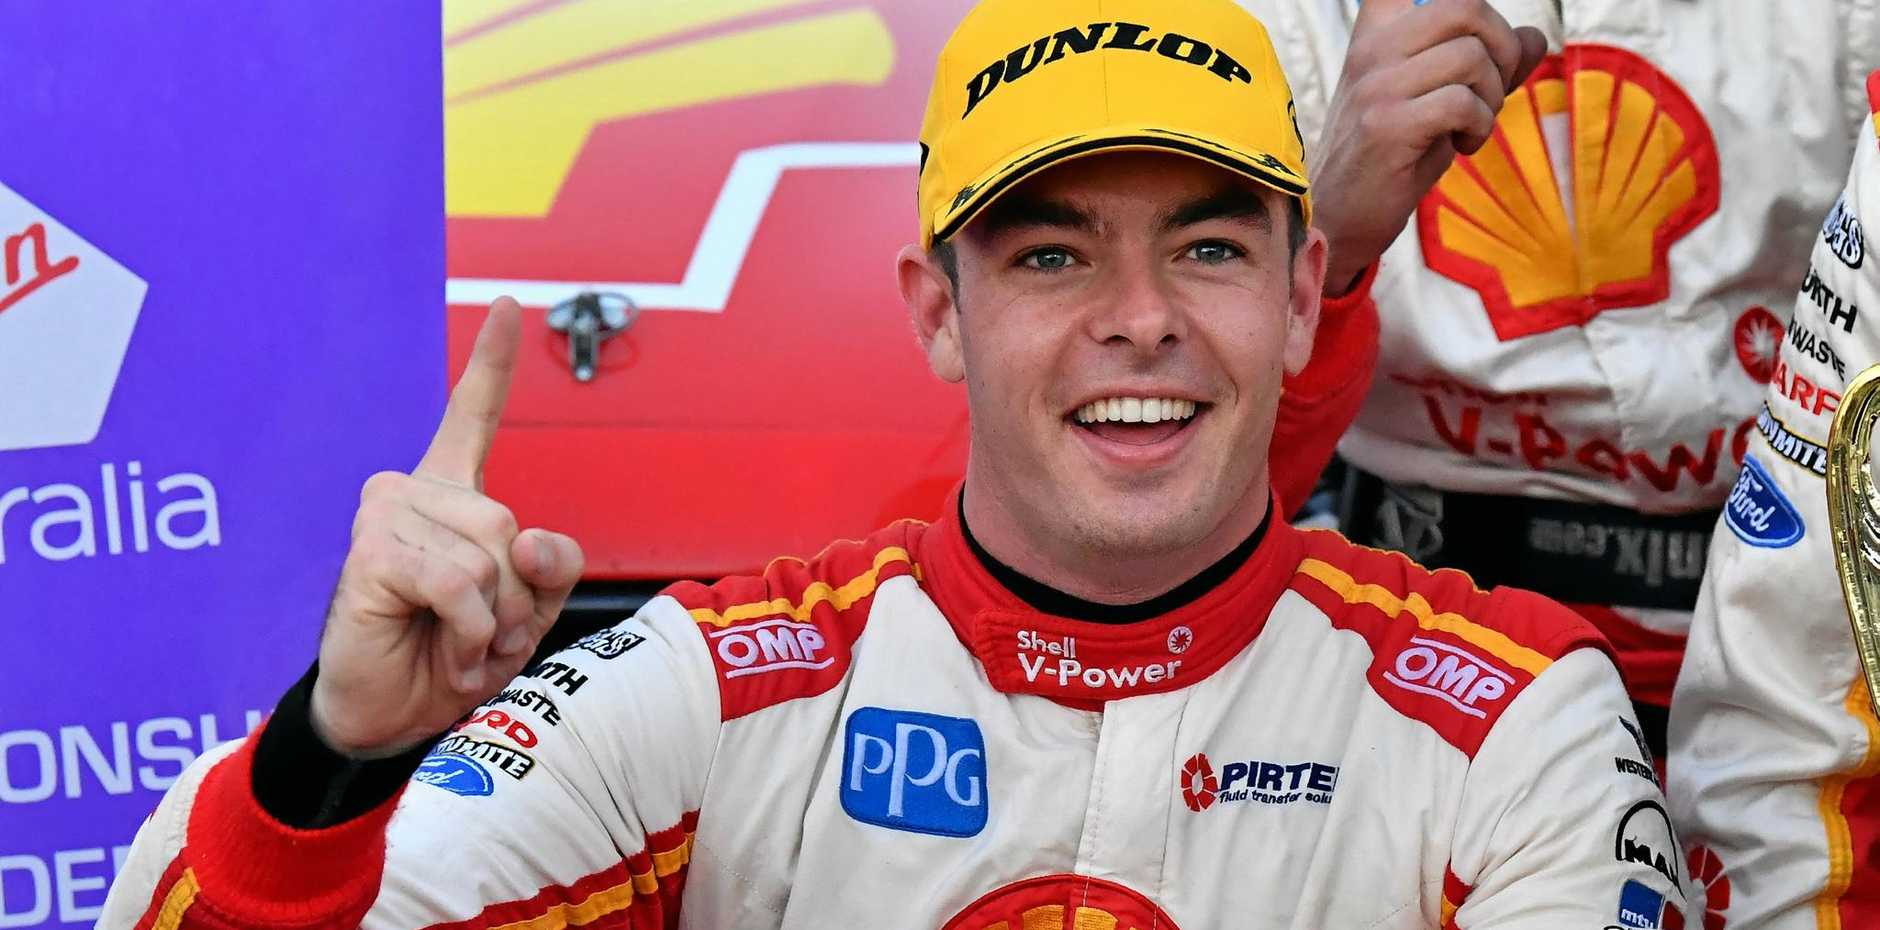 Shell V-Power Racing's Scott McLaughlin celebrates winning race 15 at the Ipswich SuperSprint round of the Supercars championship.